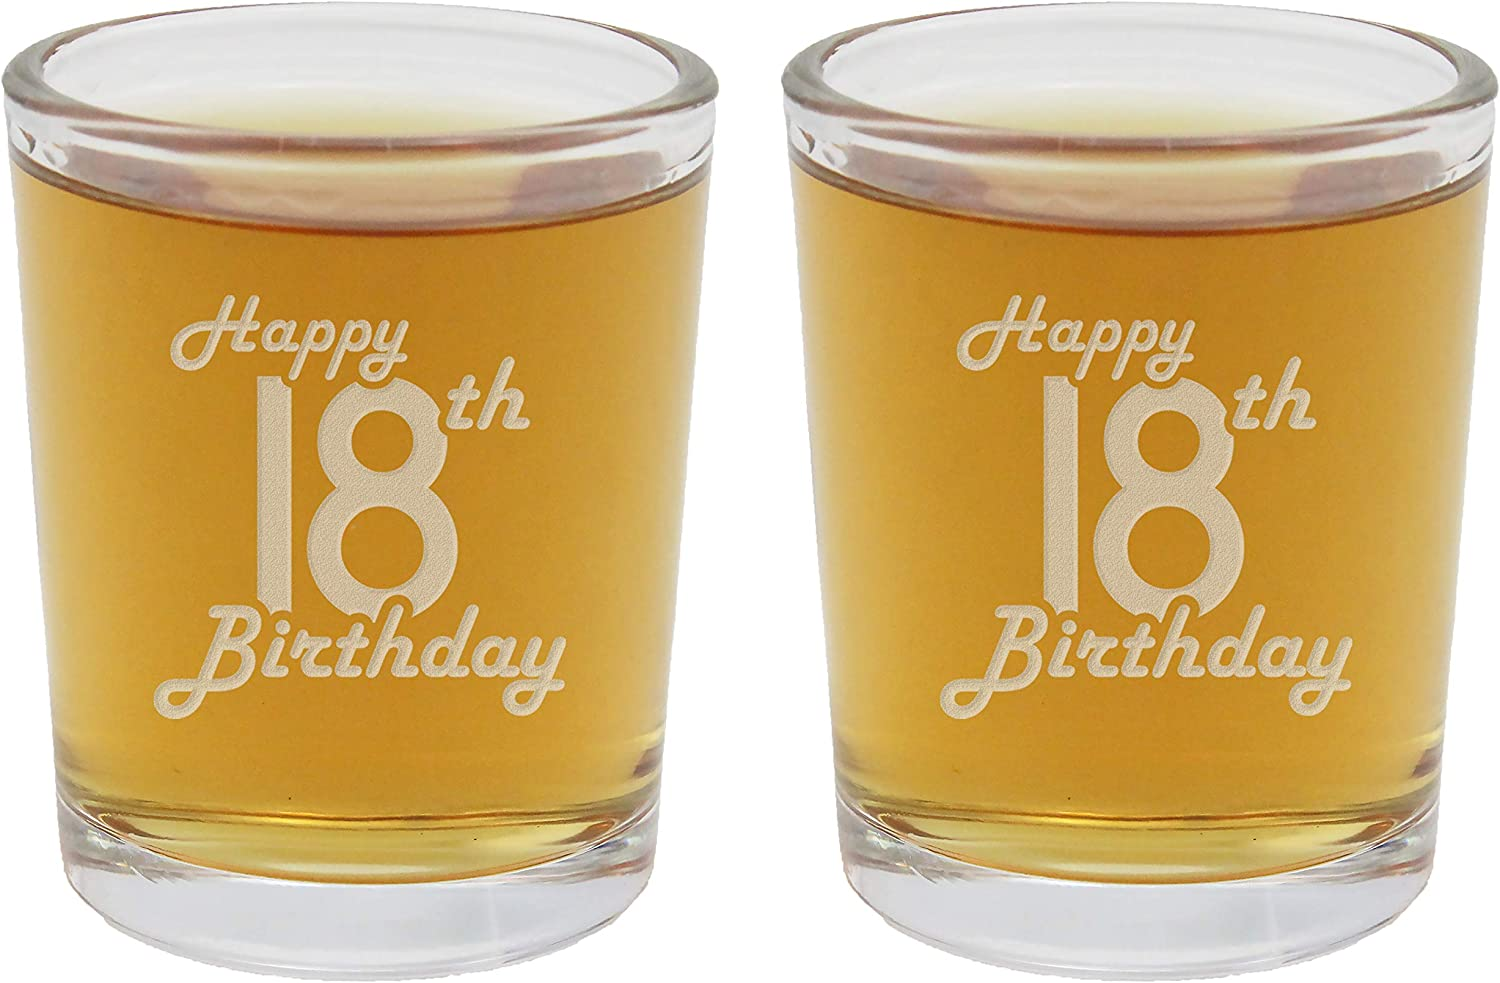 2pk Etched 2.5oz Shot Glasses - Happy 18th Birthday - 18 Years Old Gifts